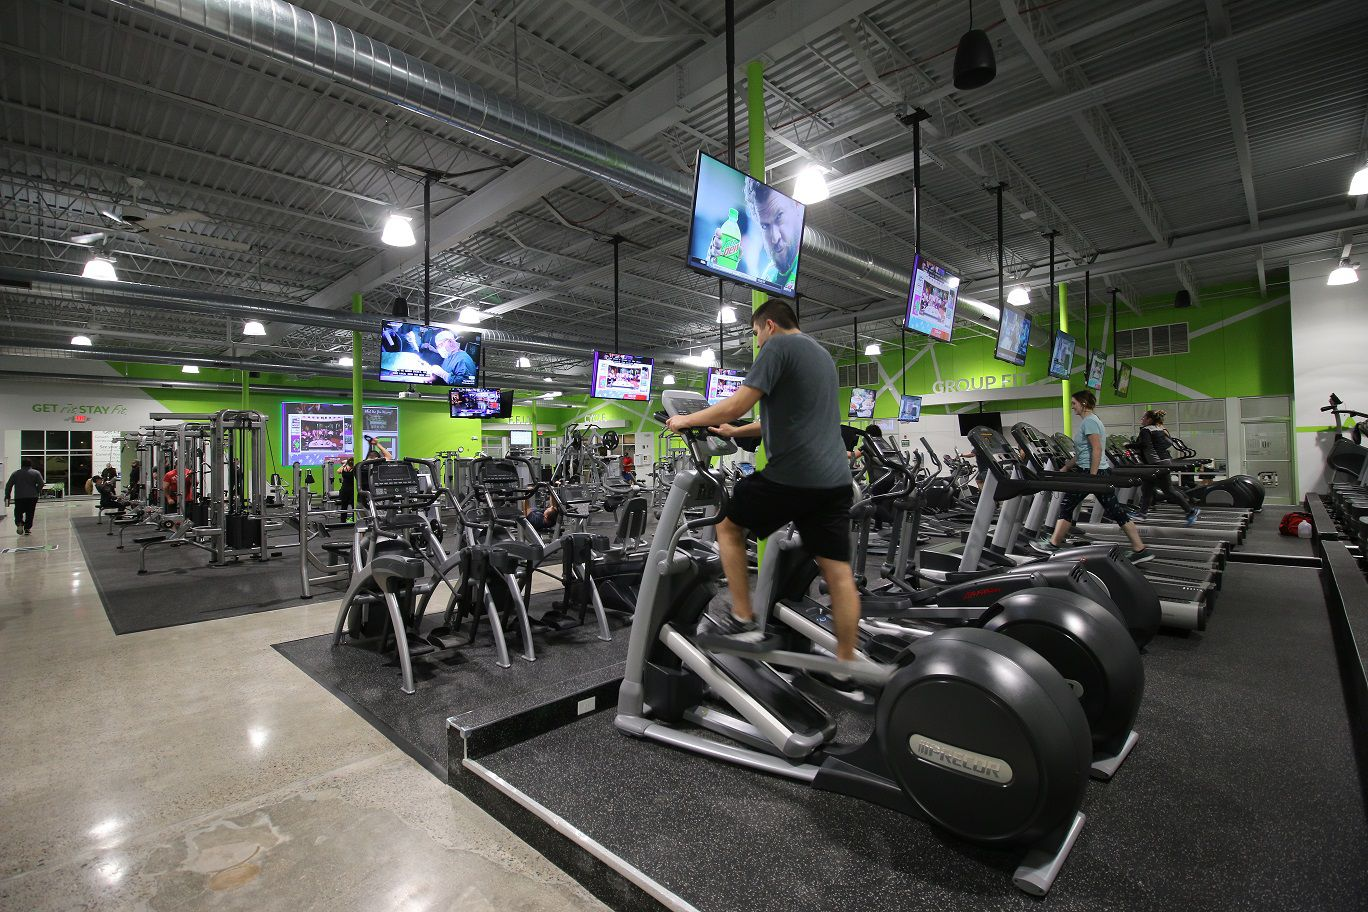 Fit Factory plans to open 10 D-FW locations.